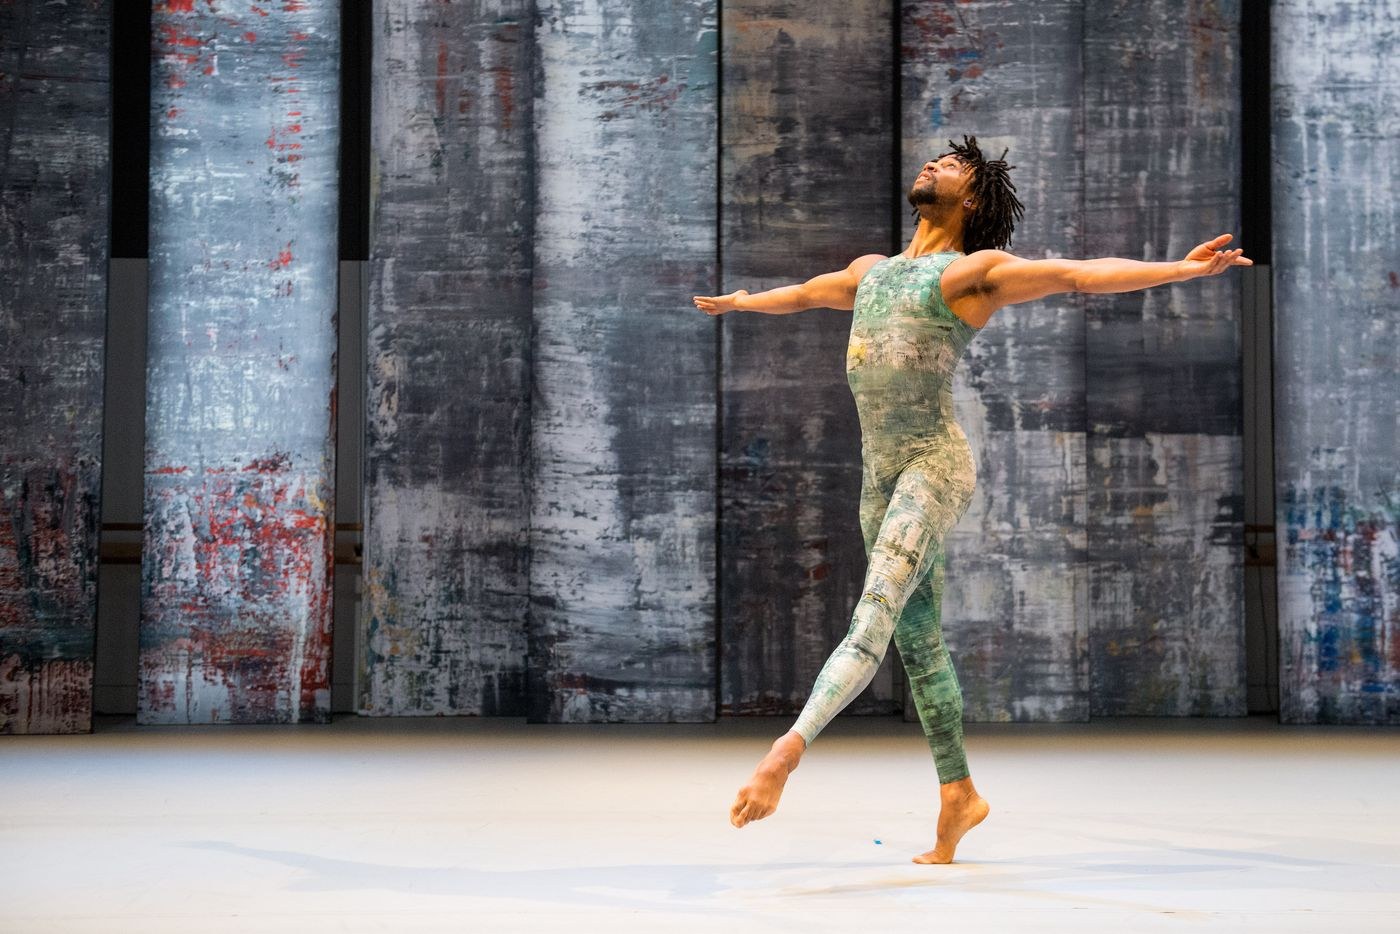 In advance of Rambert taking the stage at Phillips, we sat down with Cunningham protégée Jeannie Steele to talk choreography, creative process and the upcoming performances set to Gerhard Richter's iconic paintings.